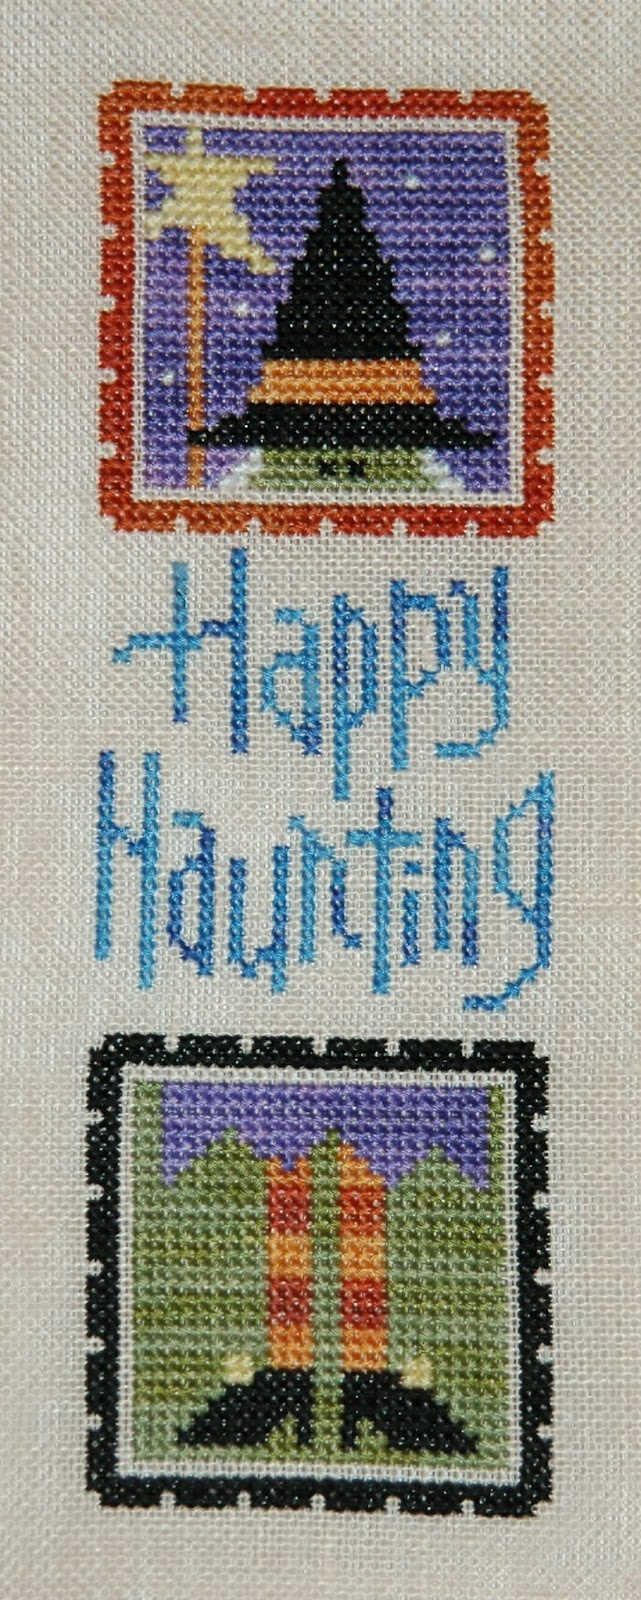 Lizzie*Kate finish - Happy Haunting, from the Fall Crazy leaflet